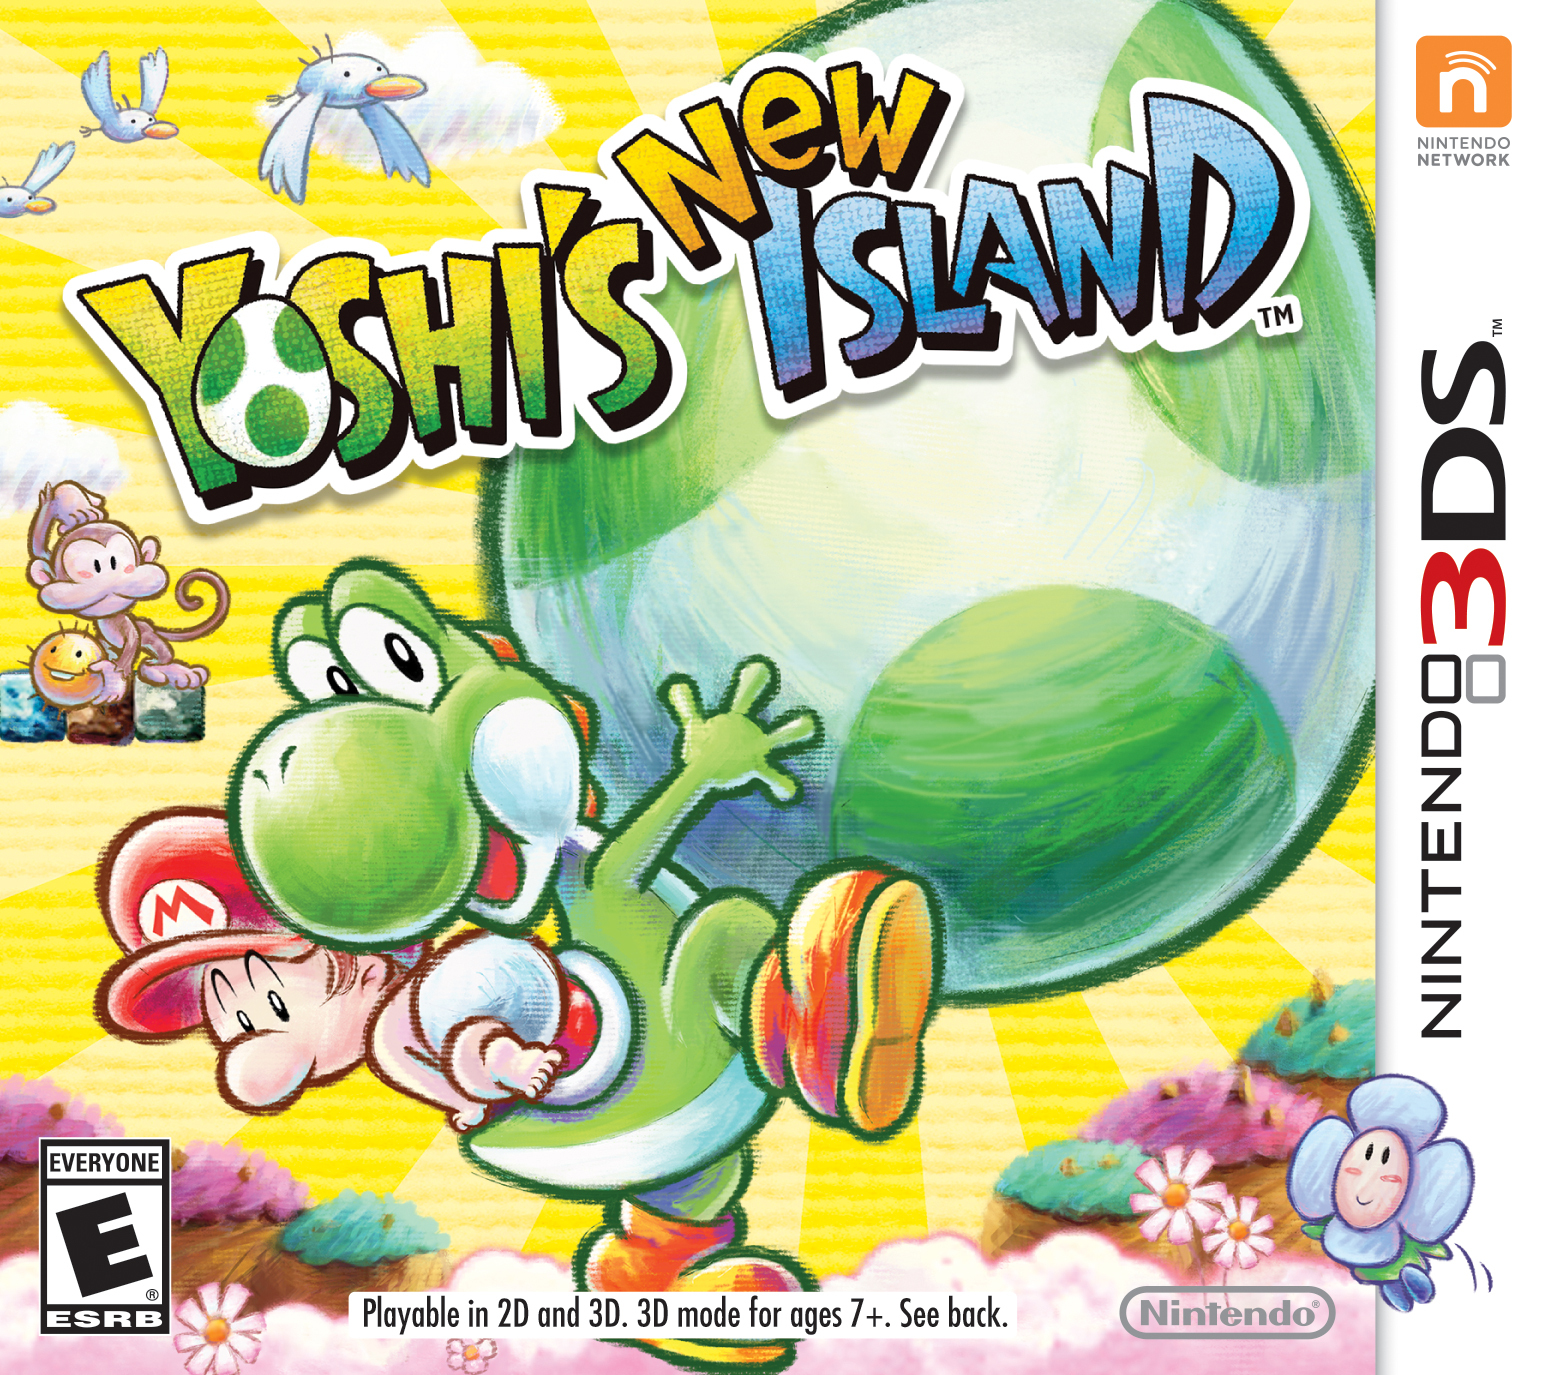 Yoshi's New Island launches on the portable Nintendo 3DS system on March 14. The game includes new features like massive Mega Eggdozers, inventive transformations with unique controls and a two-player multiplayer mode. (Photo: Business Wire)